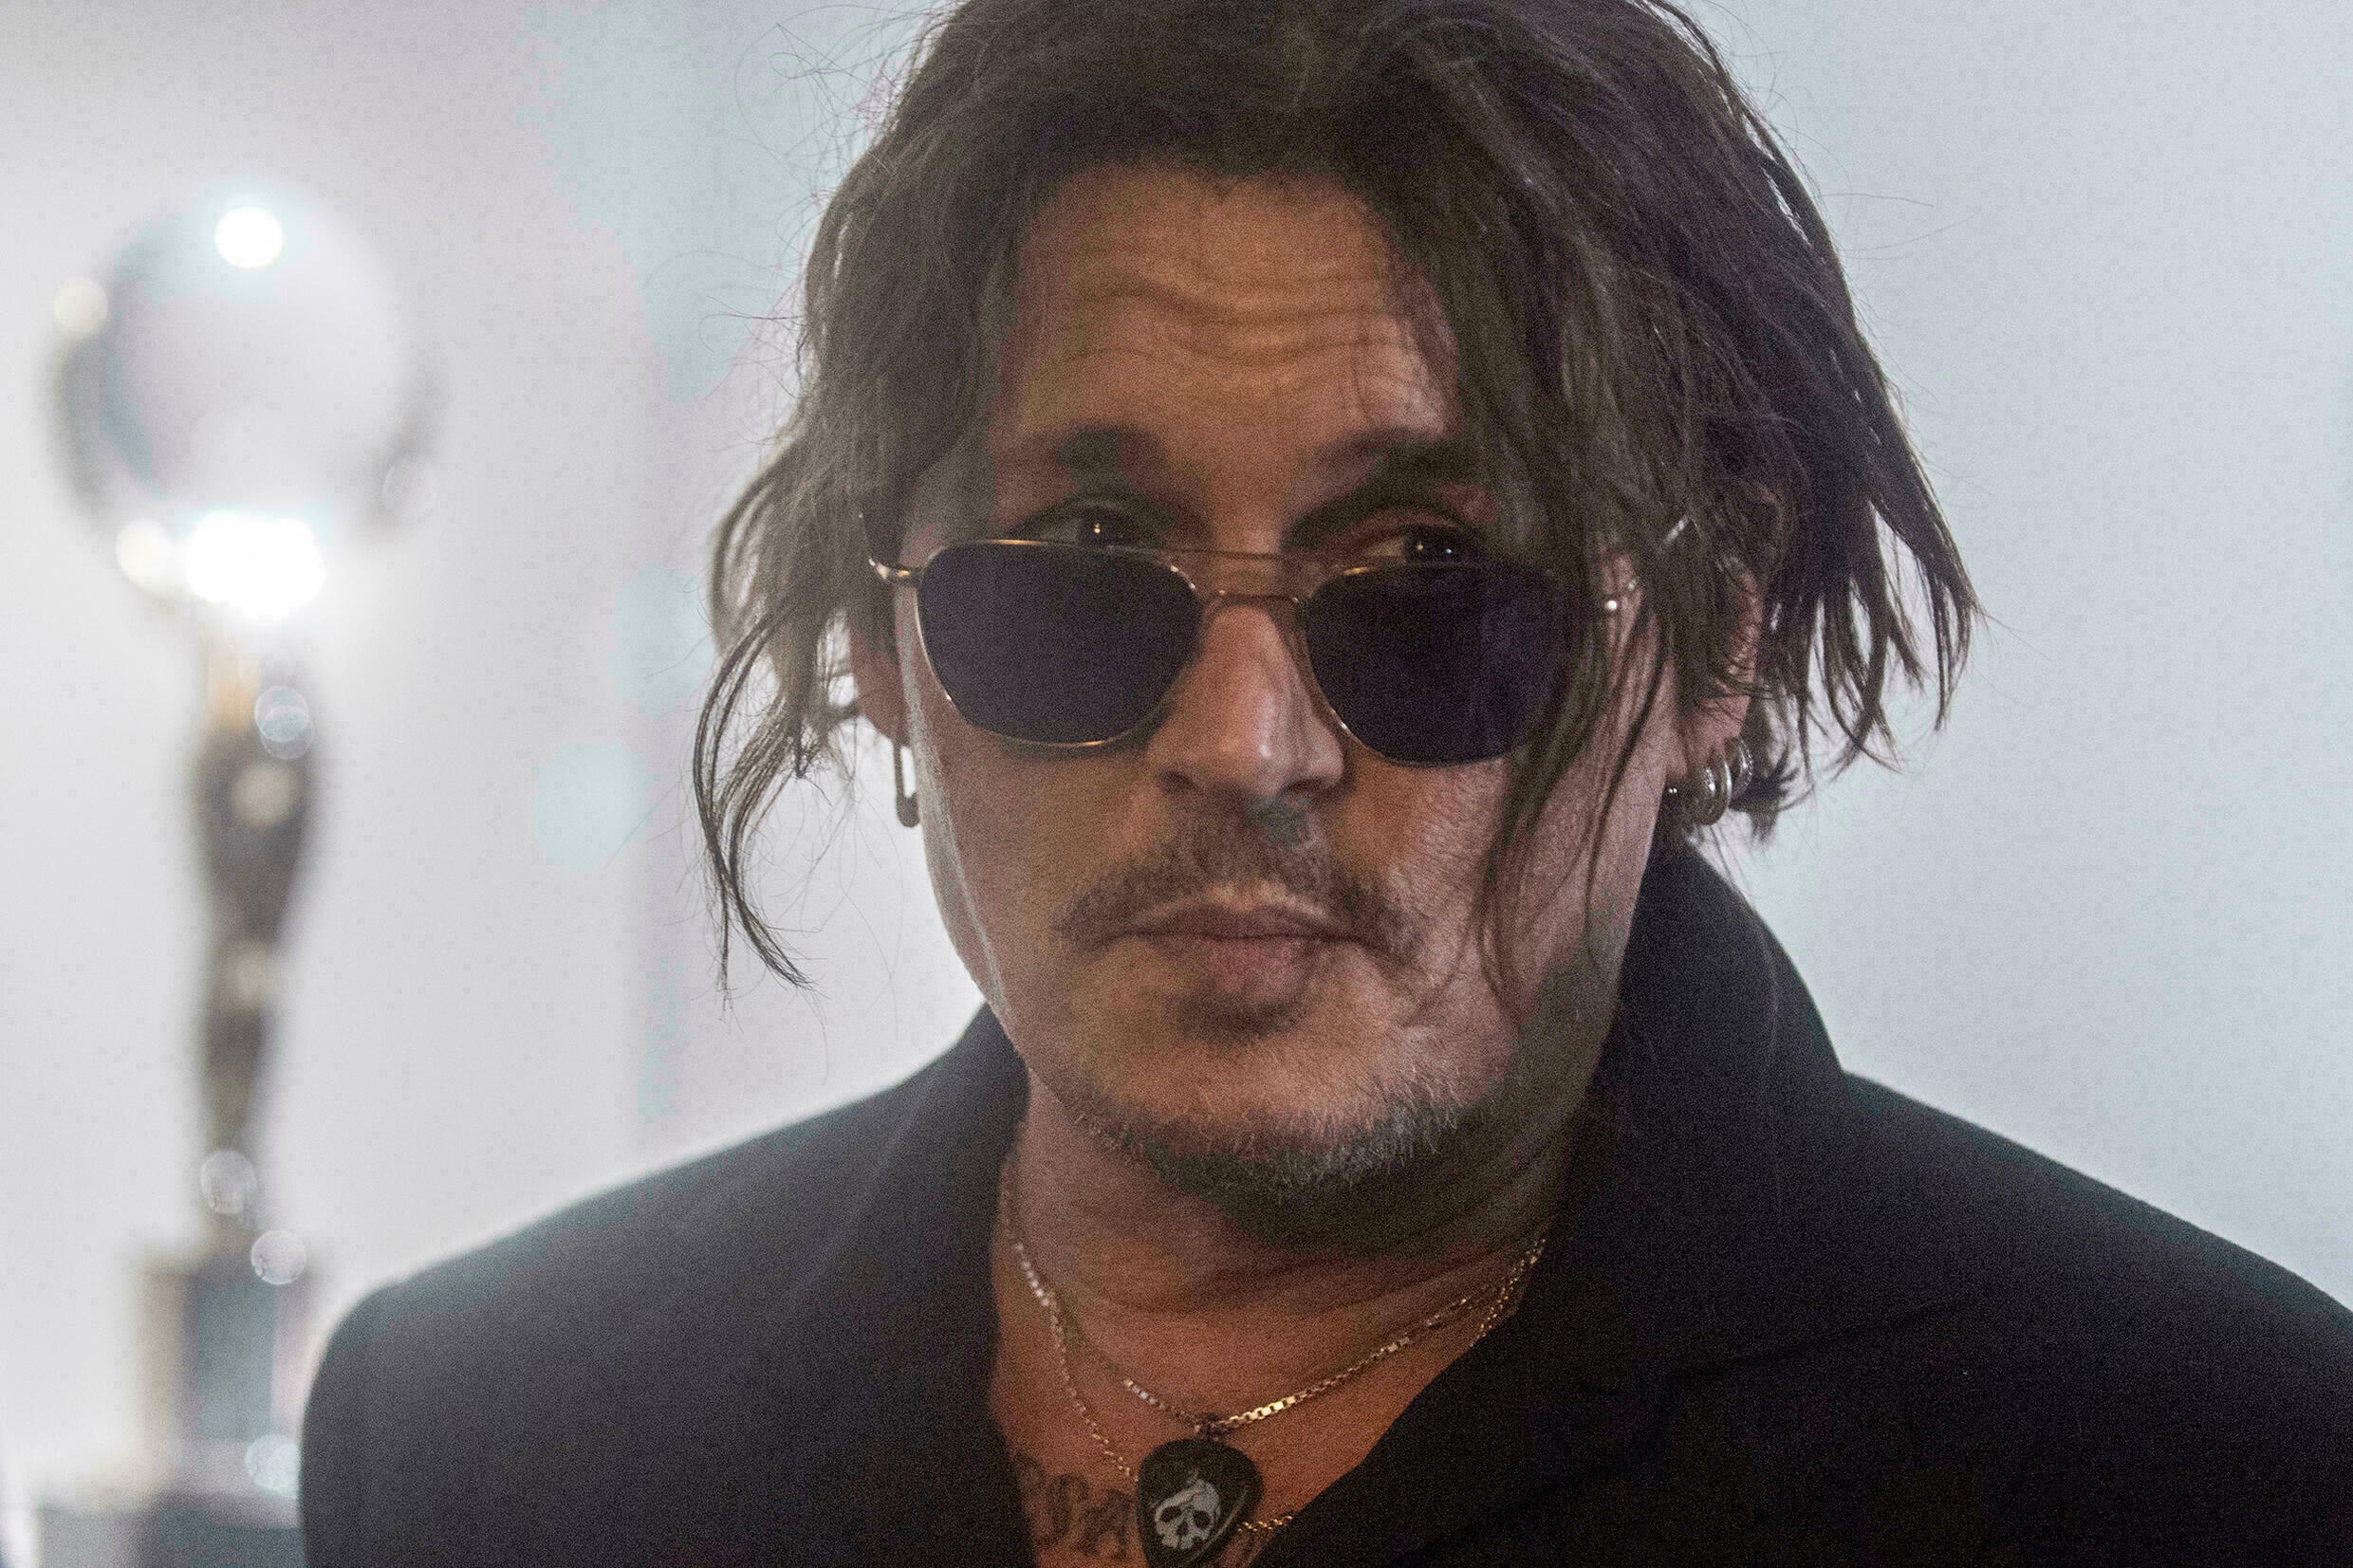 American actor and producer Johnny Depp at the Karlovy Vary Film Festival on August 27, 2021 in the Czech Republic